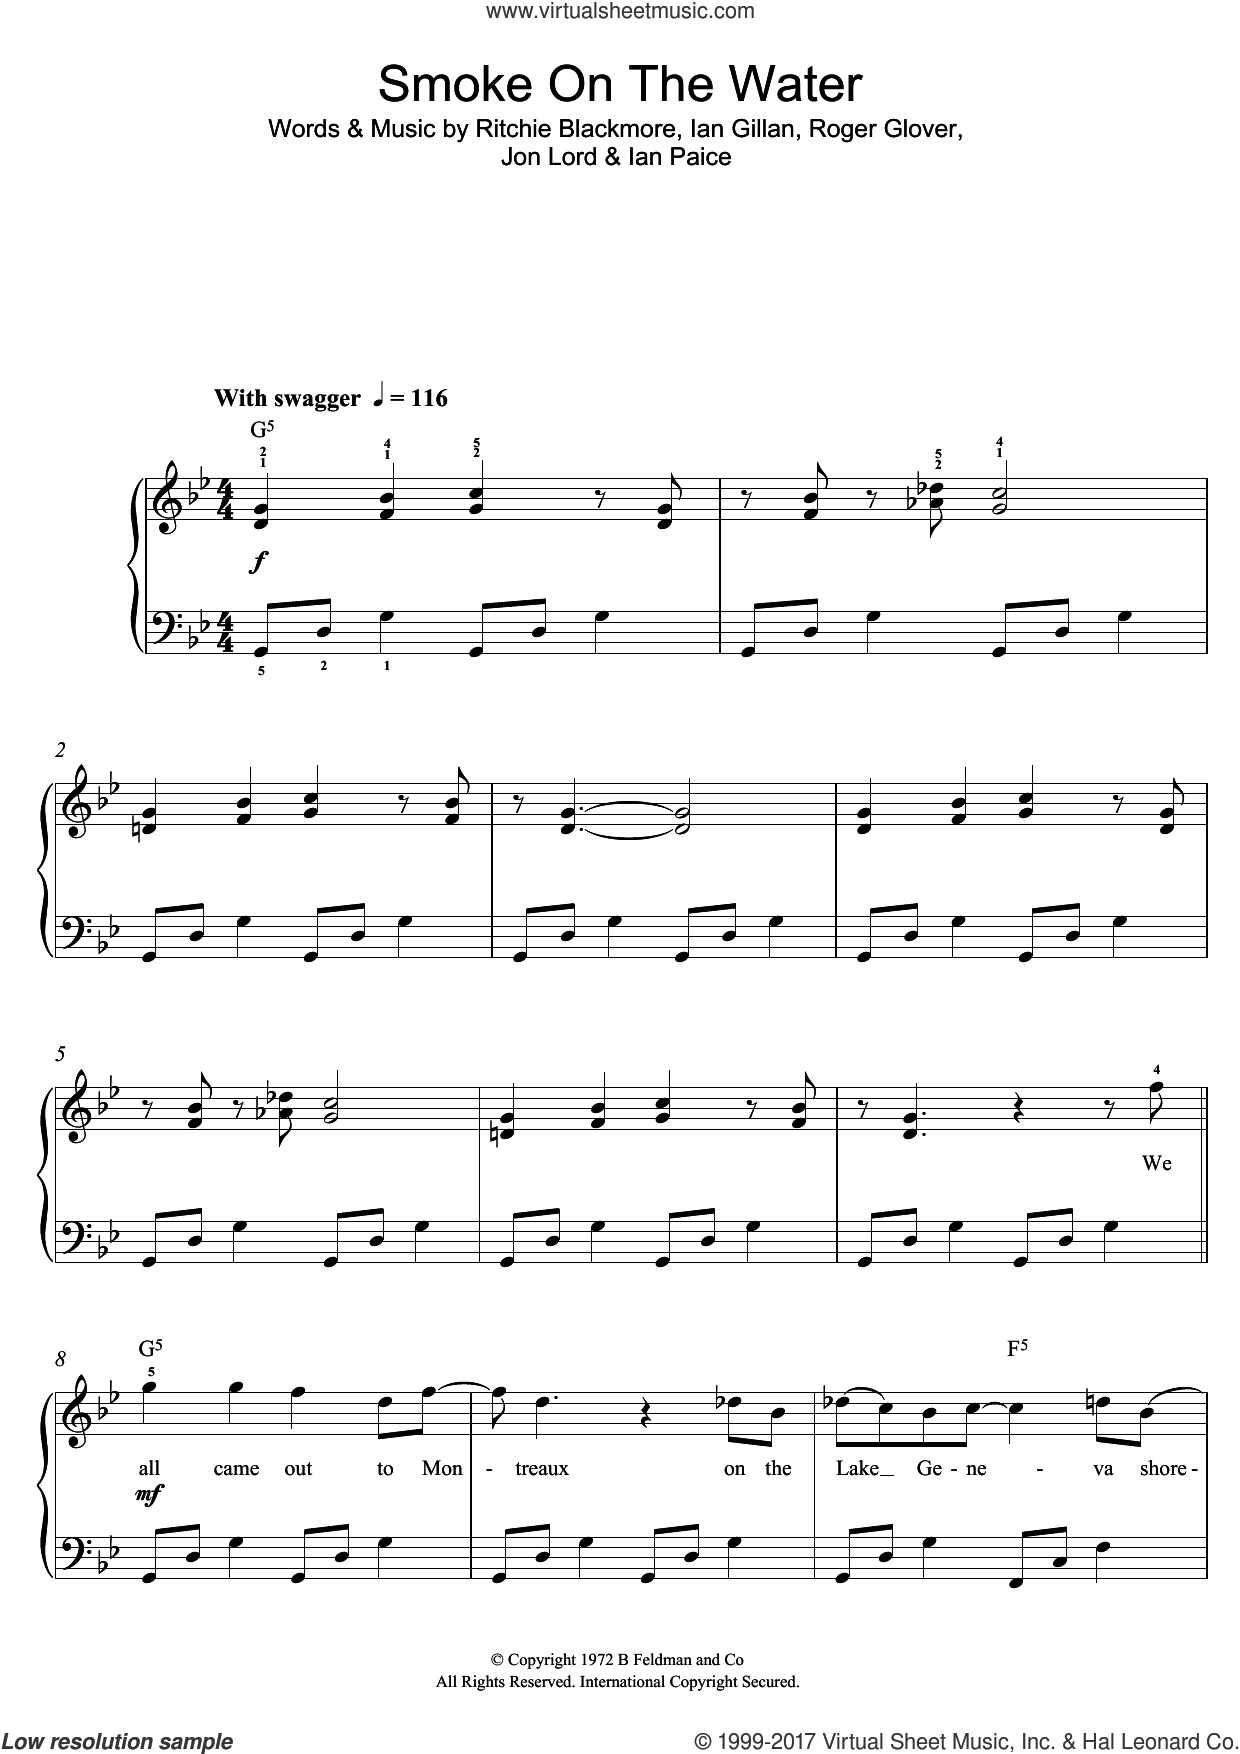 Smoke On The Water sheet music for piano solo (beginners) by Deep Purple, Ian Gillan, Ian Paice, Jon Lord, Ritchie Blackmore and Roger Glover, beginner piano (beginners)